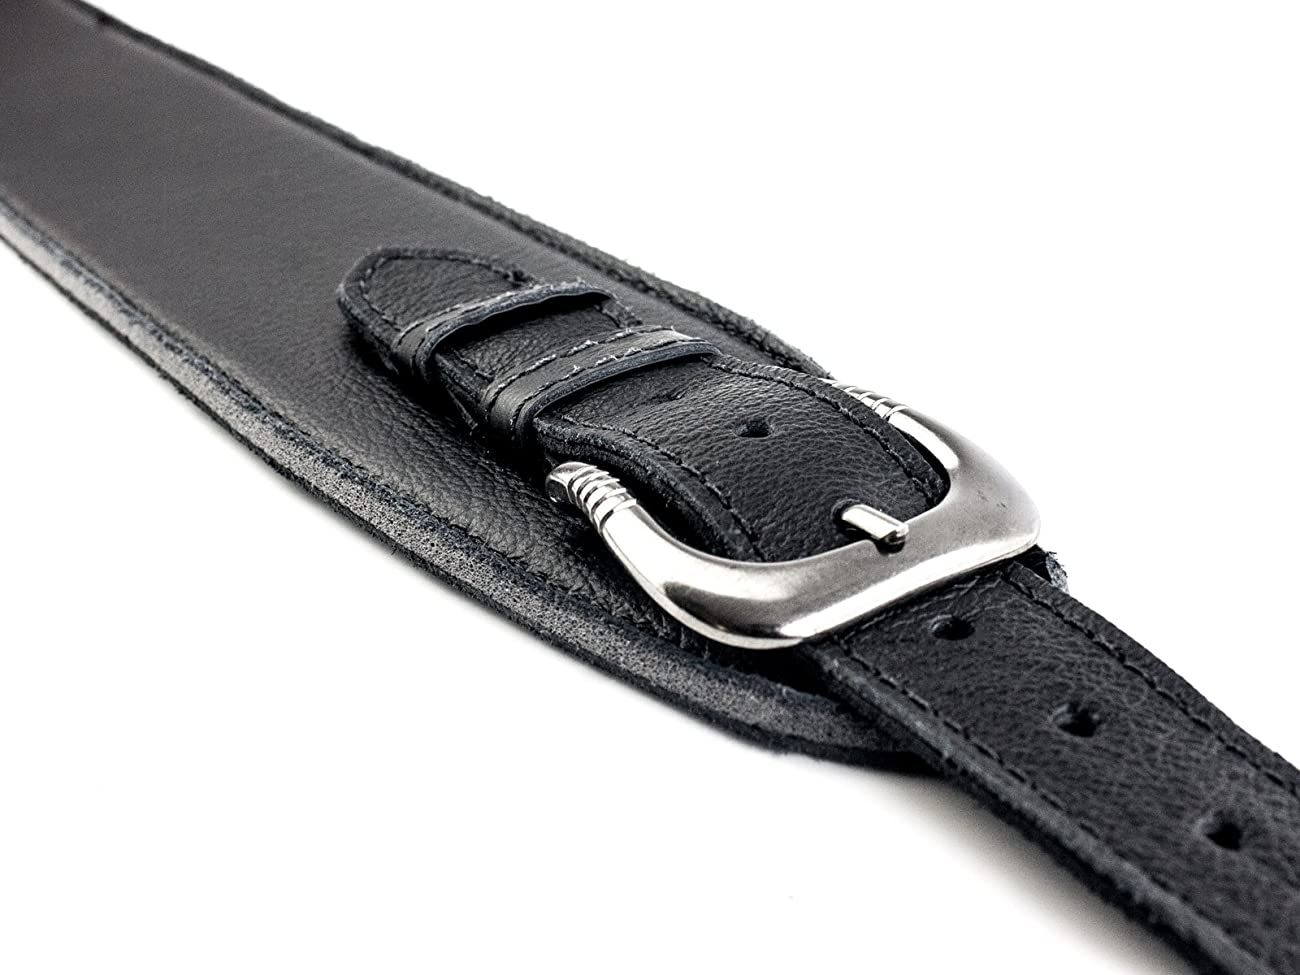 UK Made Black Vintage Extra Wide Soft Real Leather Guitar Strap with Buckle Adjustable Length 3